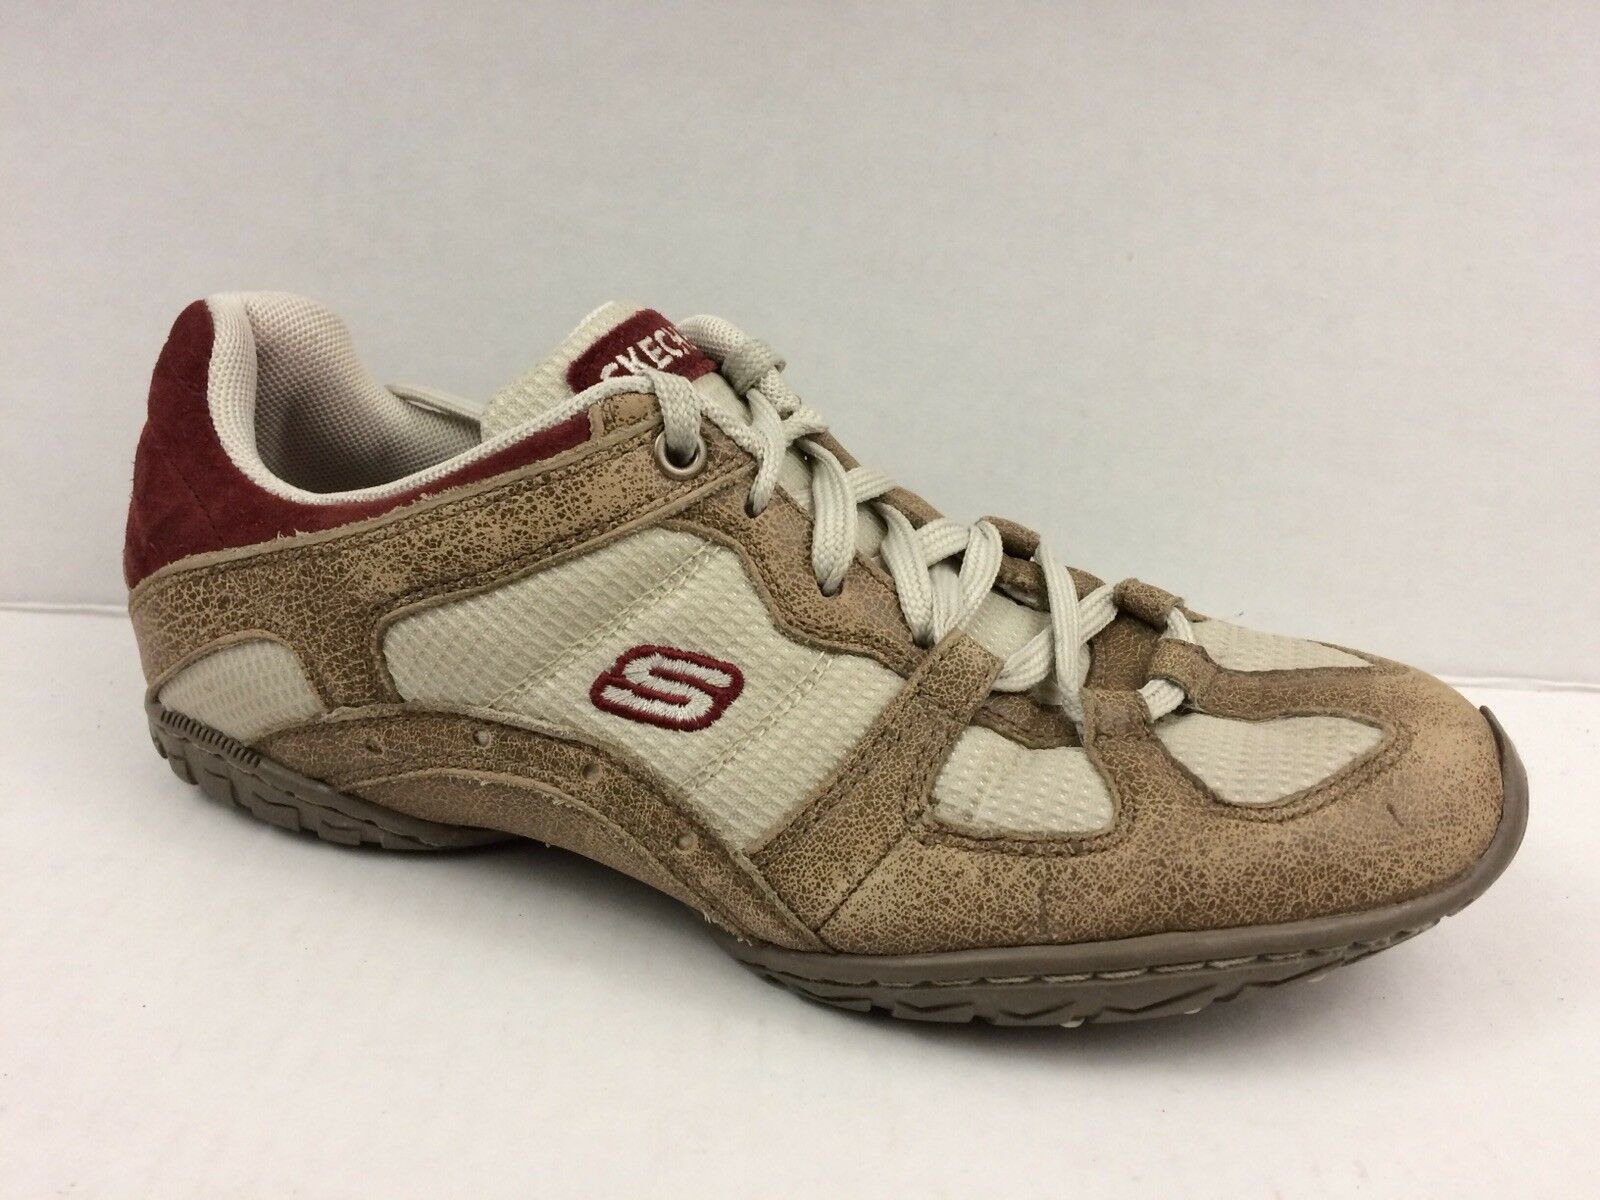 Skechers Womens 6.5 M Walking shoes Casual Sneakers Suede Leather Tan Berry Red